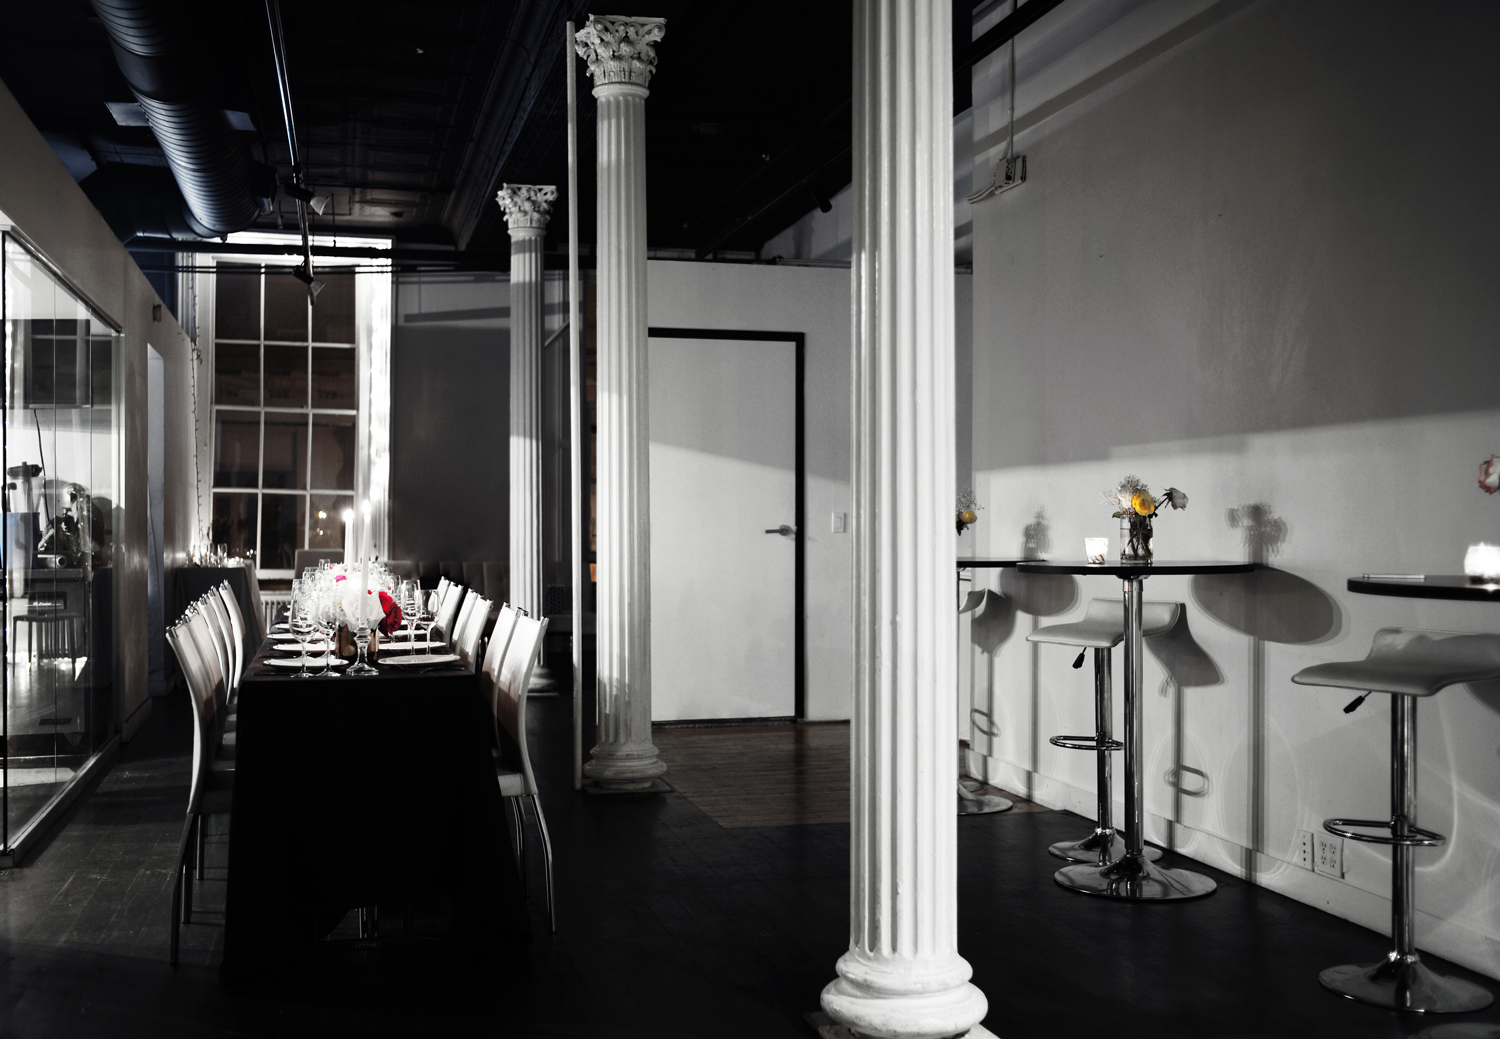 Full Venue event space at Suite ThreeOhSix in New York City, NYC, NY/NJ Area